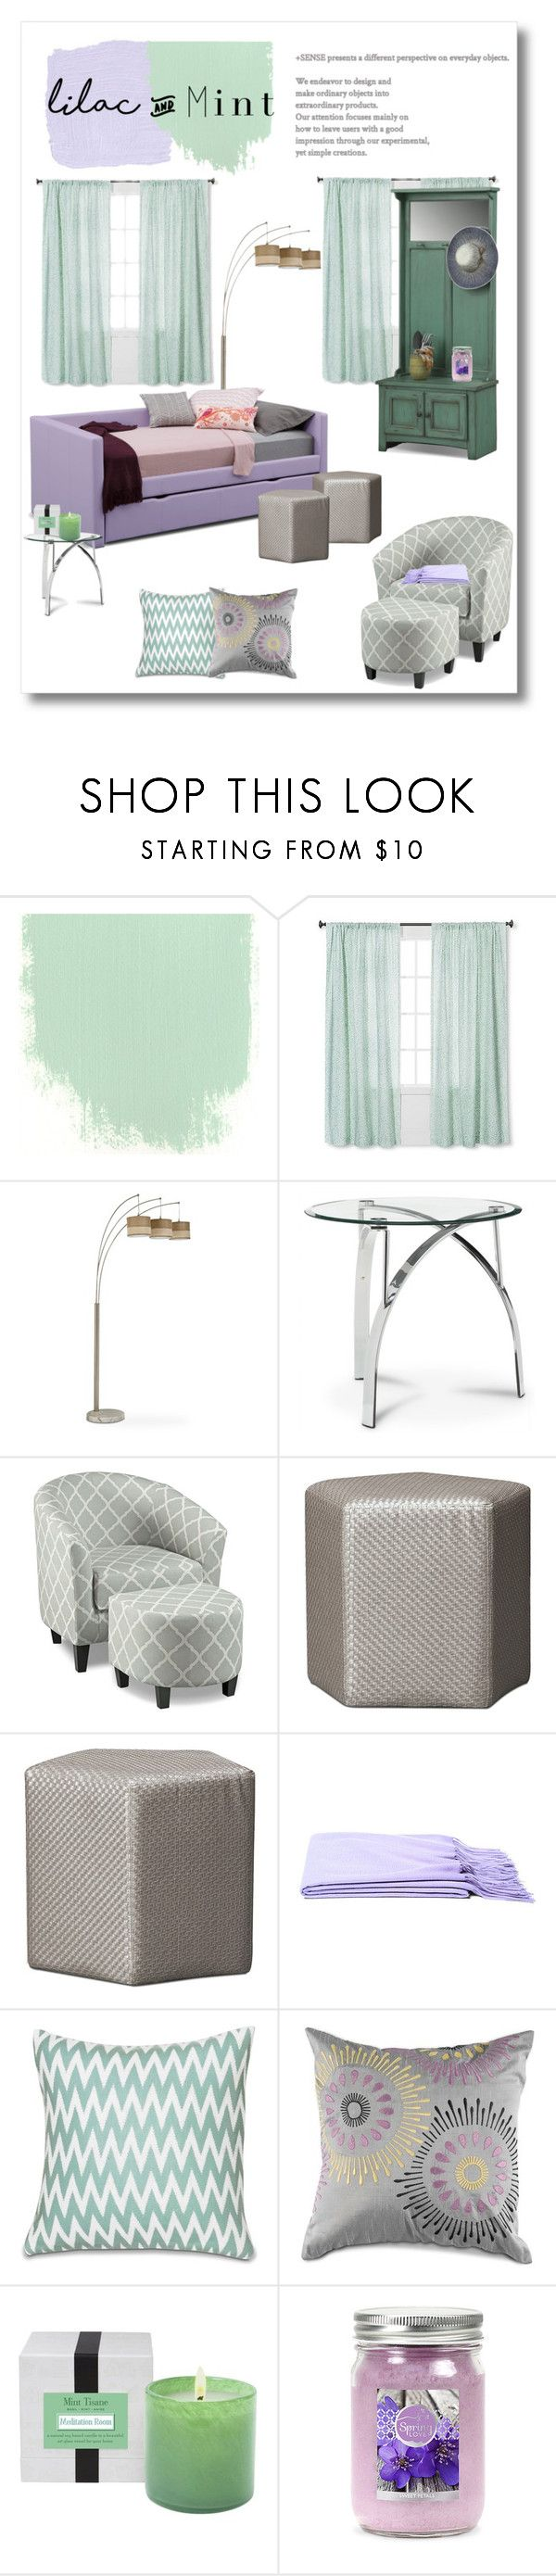 Threshold home decor shop for threshold home decor on polyvore - Lilac Mint For Her By Valuecityfurn On Polyvore Featuring Interior Interiors Interior Design Withlilacsinterior Decoratinginterior